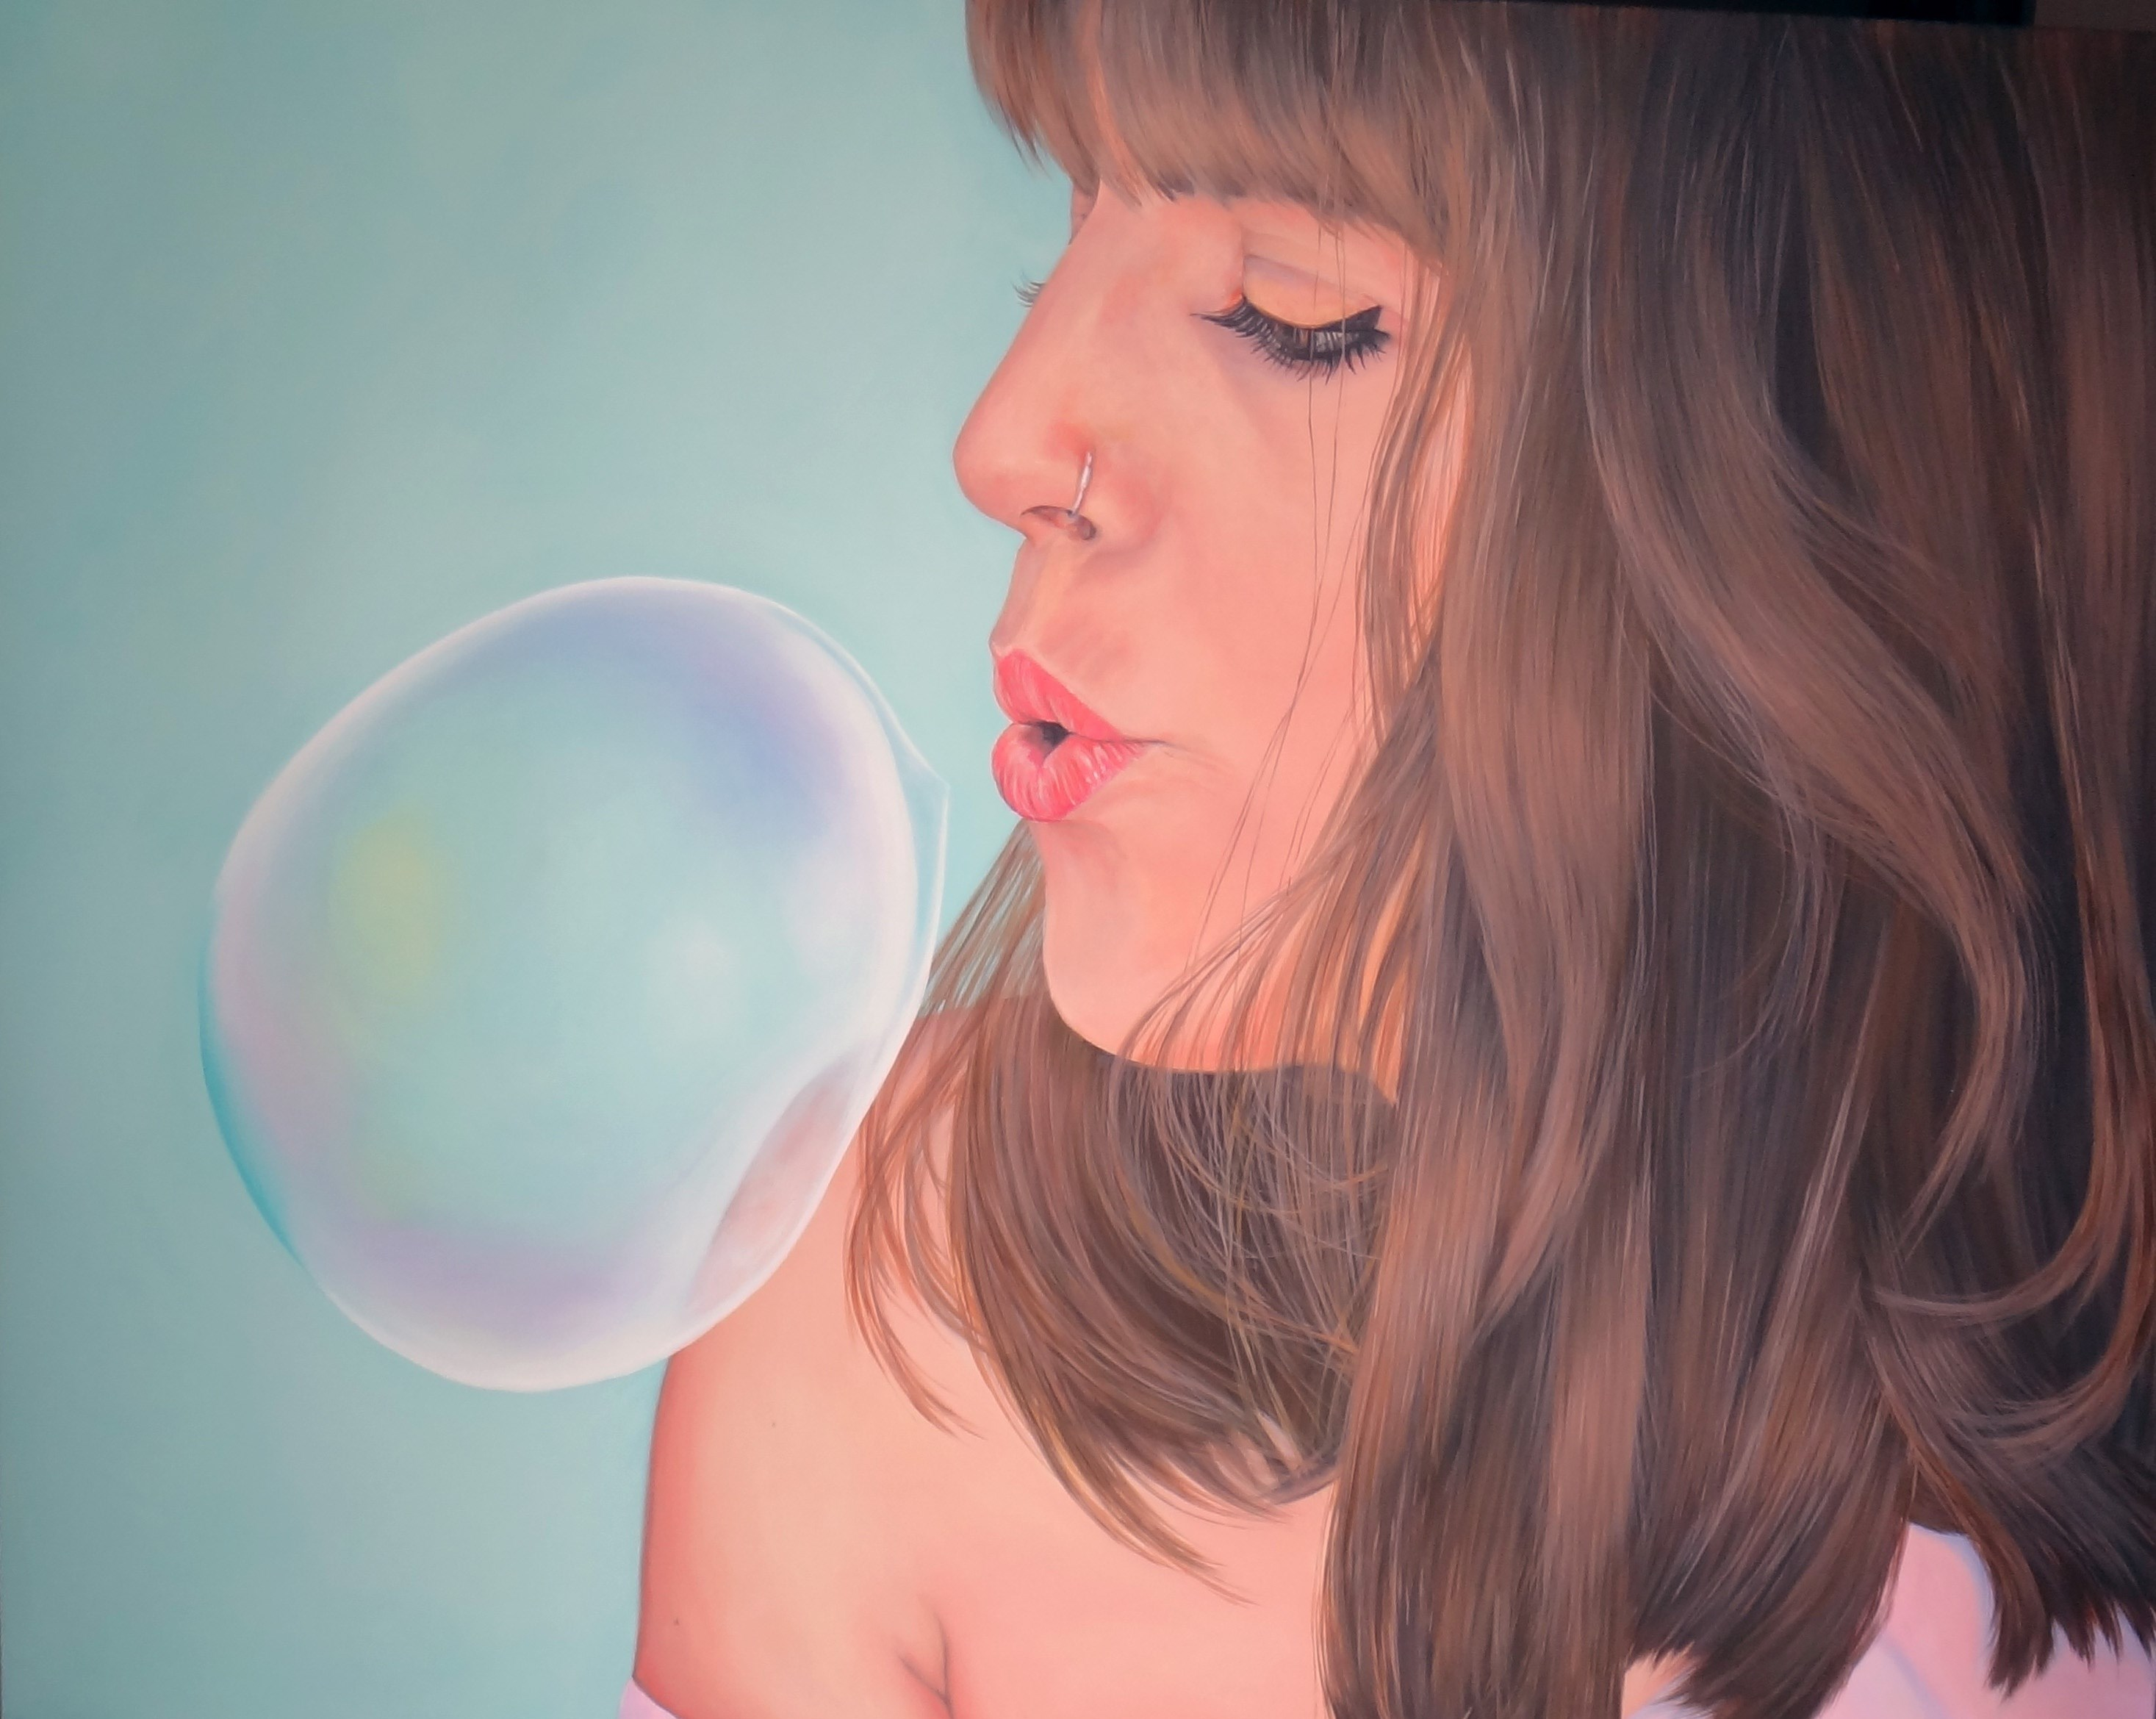 """Bubble"", original Body Acrylic Painting by Ursula Blancas"